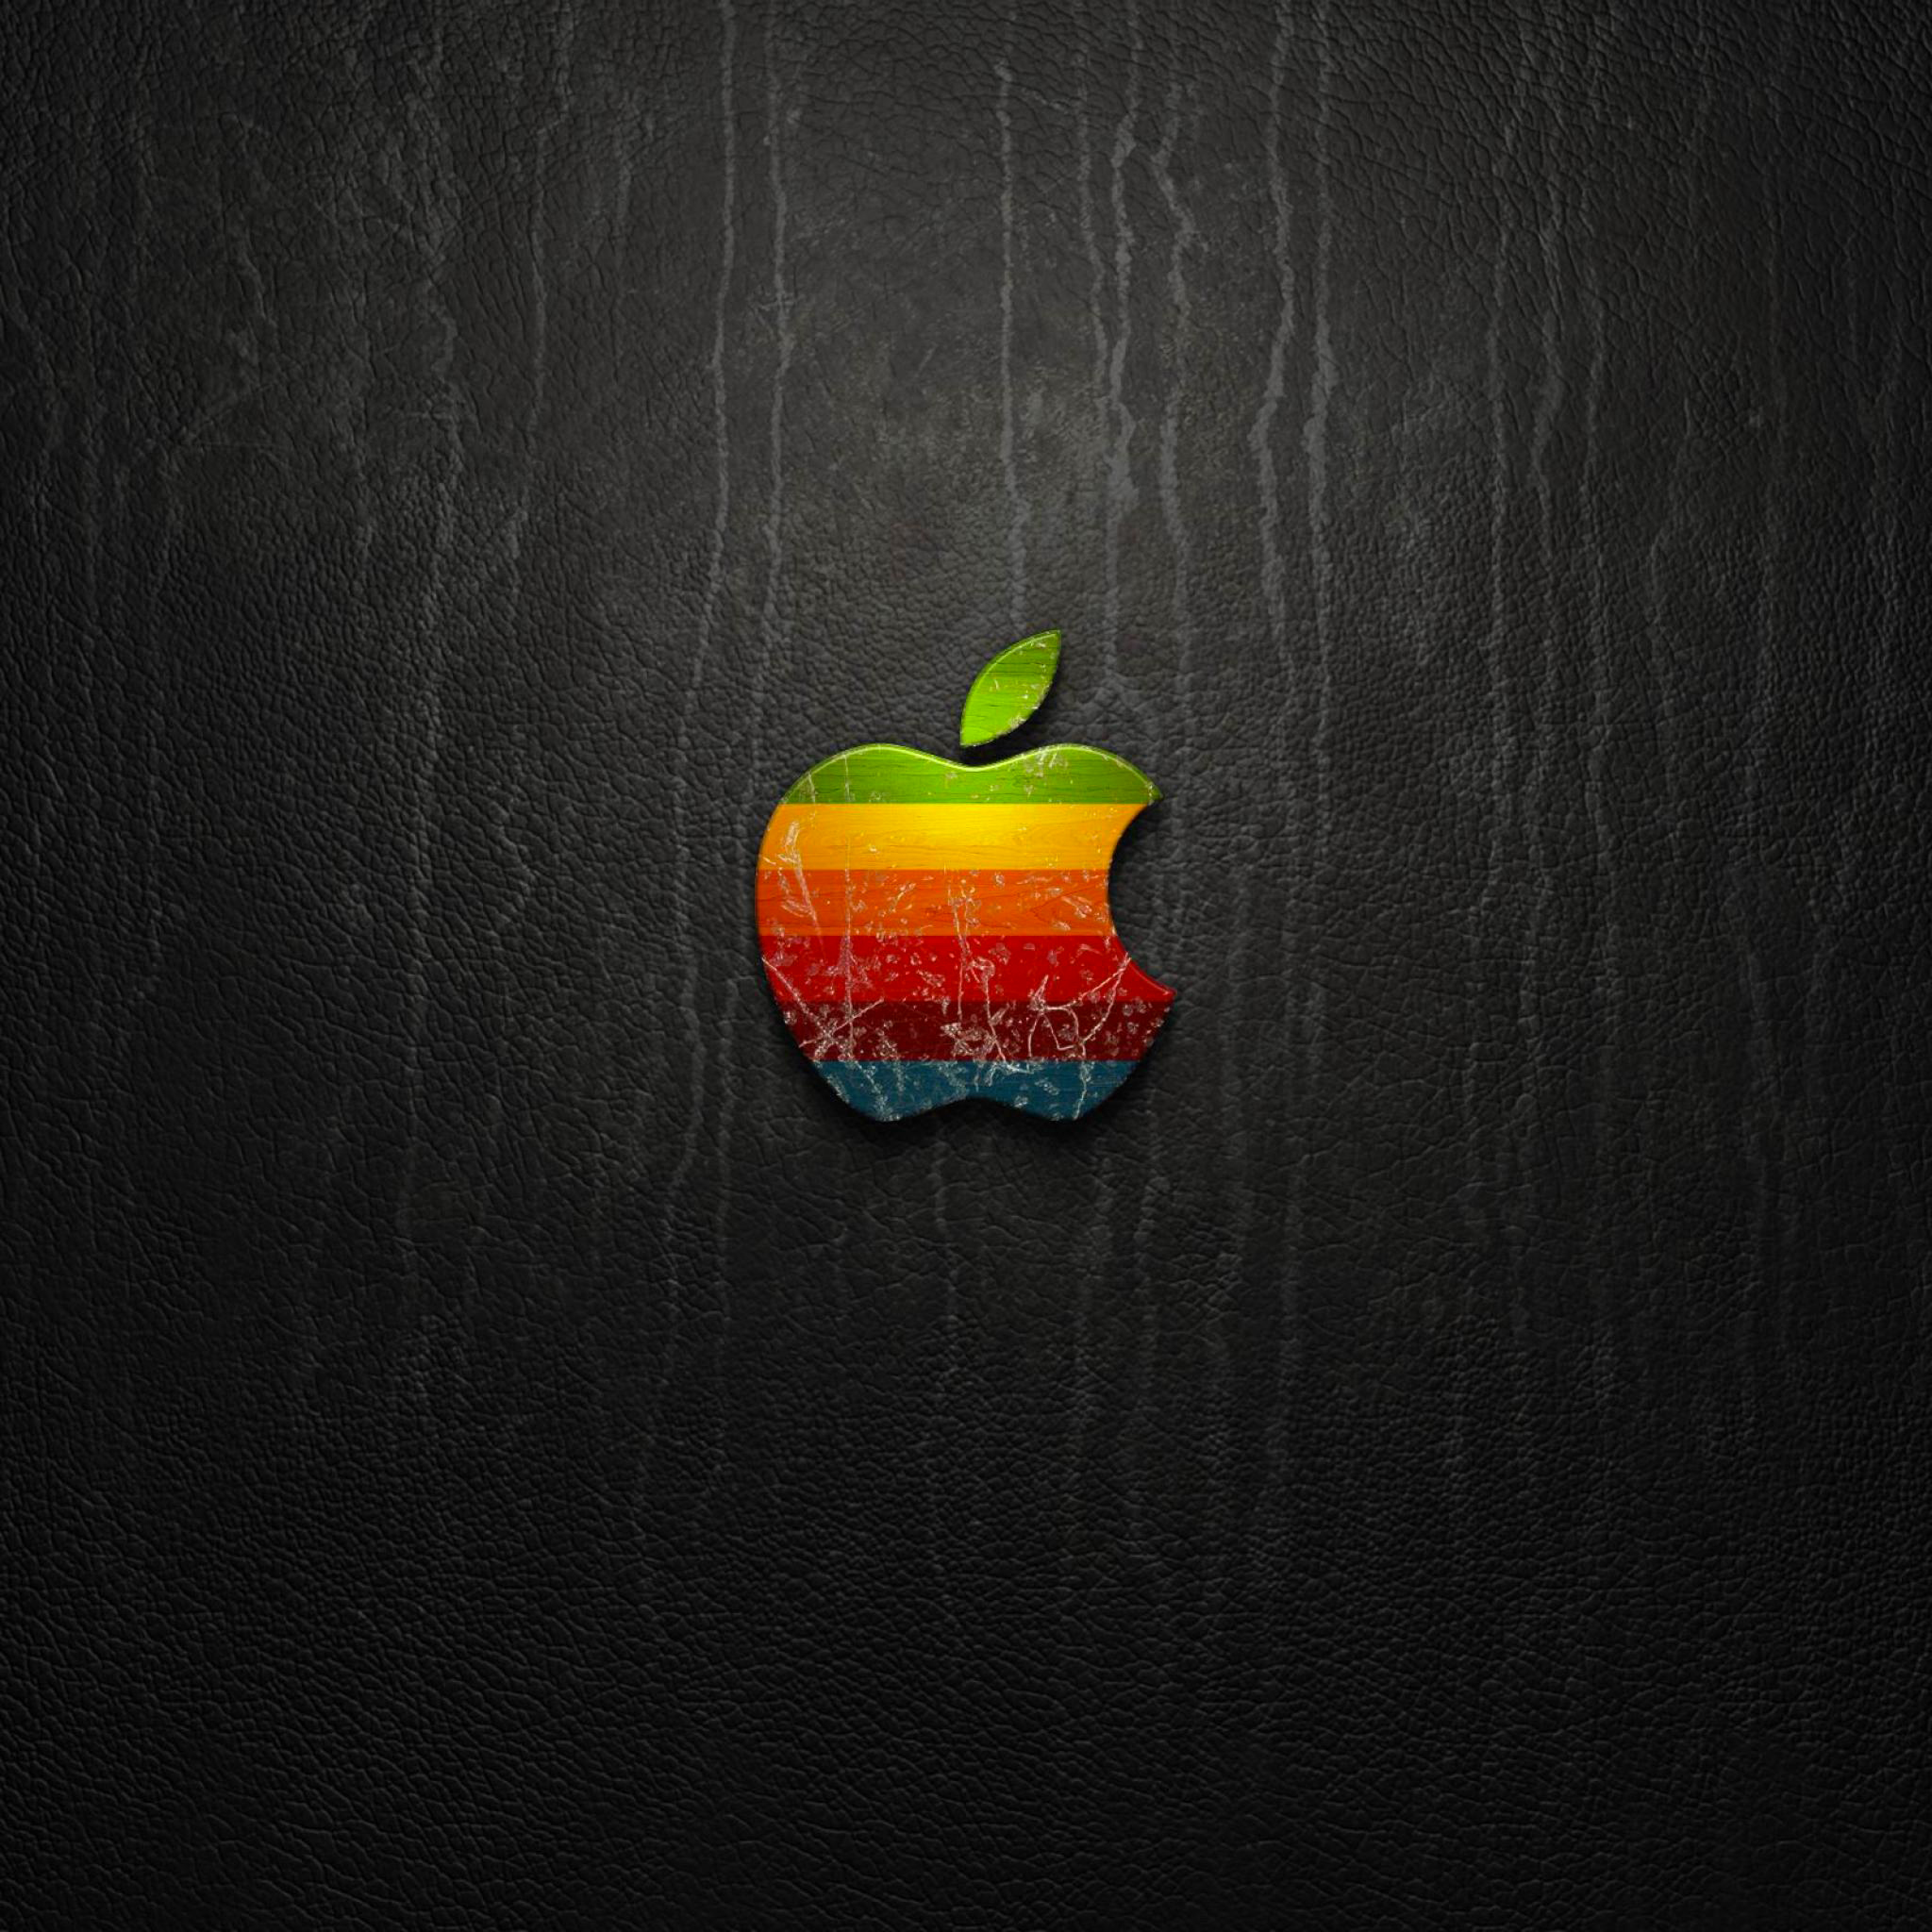 Apple Leather 3Wallpaper iPad Retina Apple Leather   iPad Retina